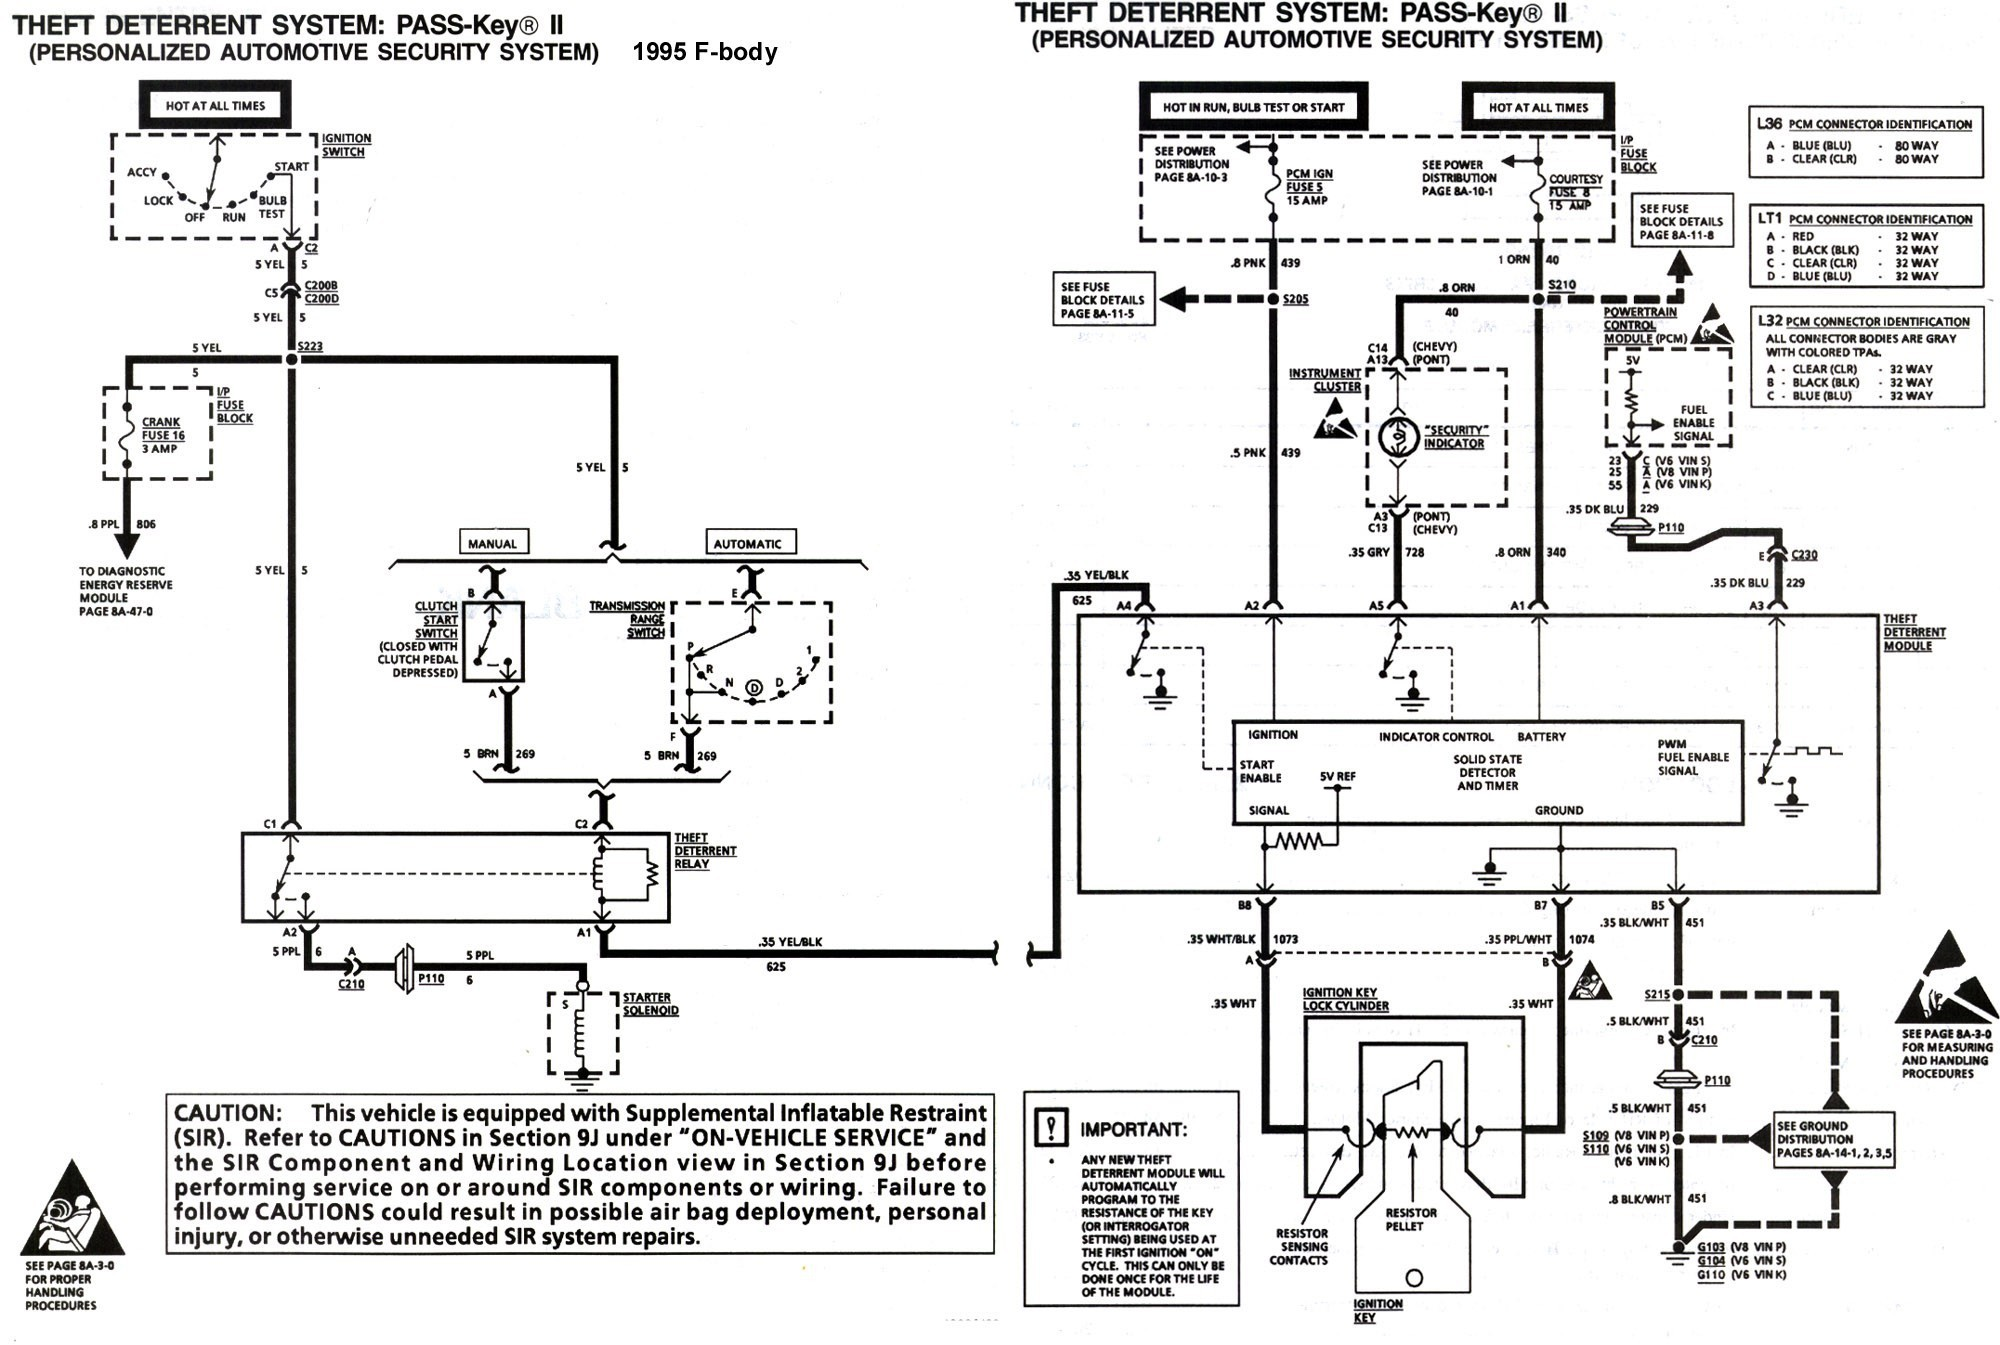 5 7 Vortec Engine Diagram 2 5 3 Vortec Engine Diagram Wiring Diagram Inside Of 5 7 Vortec Engine Diagram 2 5 3 Vortec Engine Diagram Wiring Diagram Inside